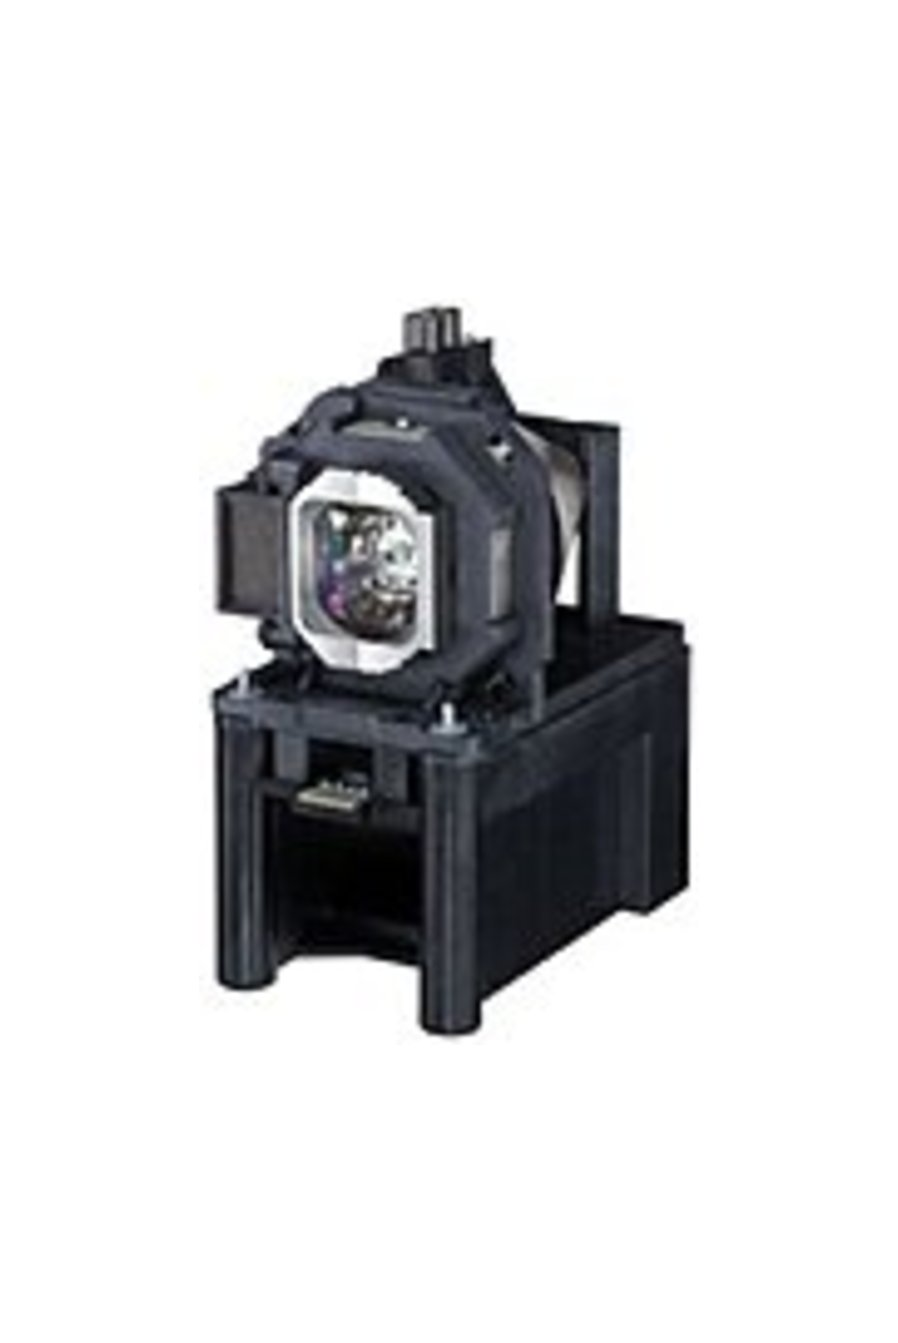 eReplacements ET-LAF100 Replacement Lamp - 250 W Projector Lamp - UHM - 2000 Hour Economy Mode, 1500 Hour Standard